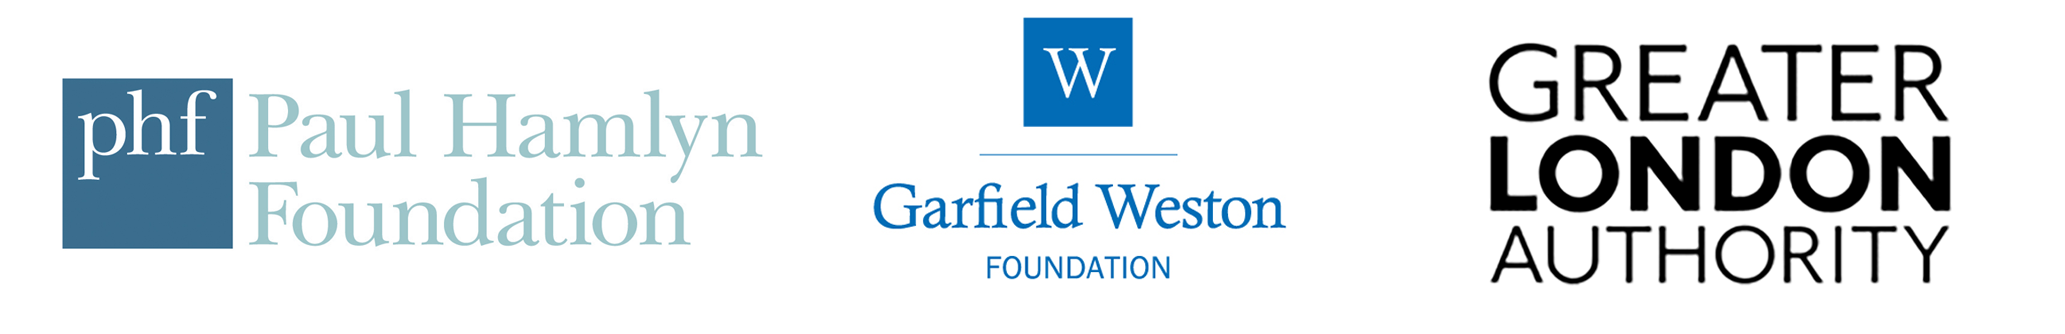 Paul Hamlyn Foundation, Greater London Authority, Garfield Weston Foundation